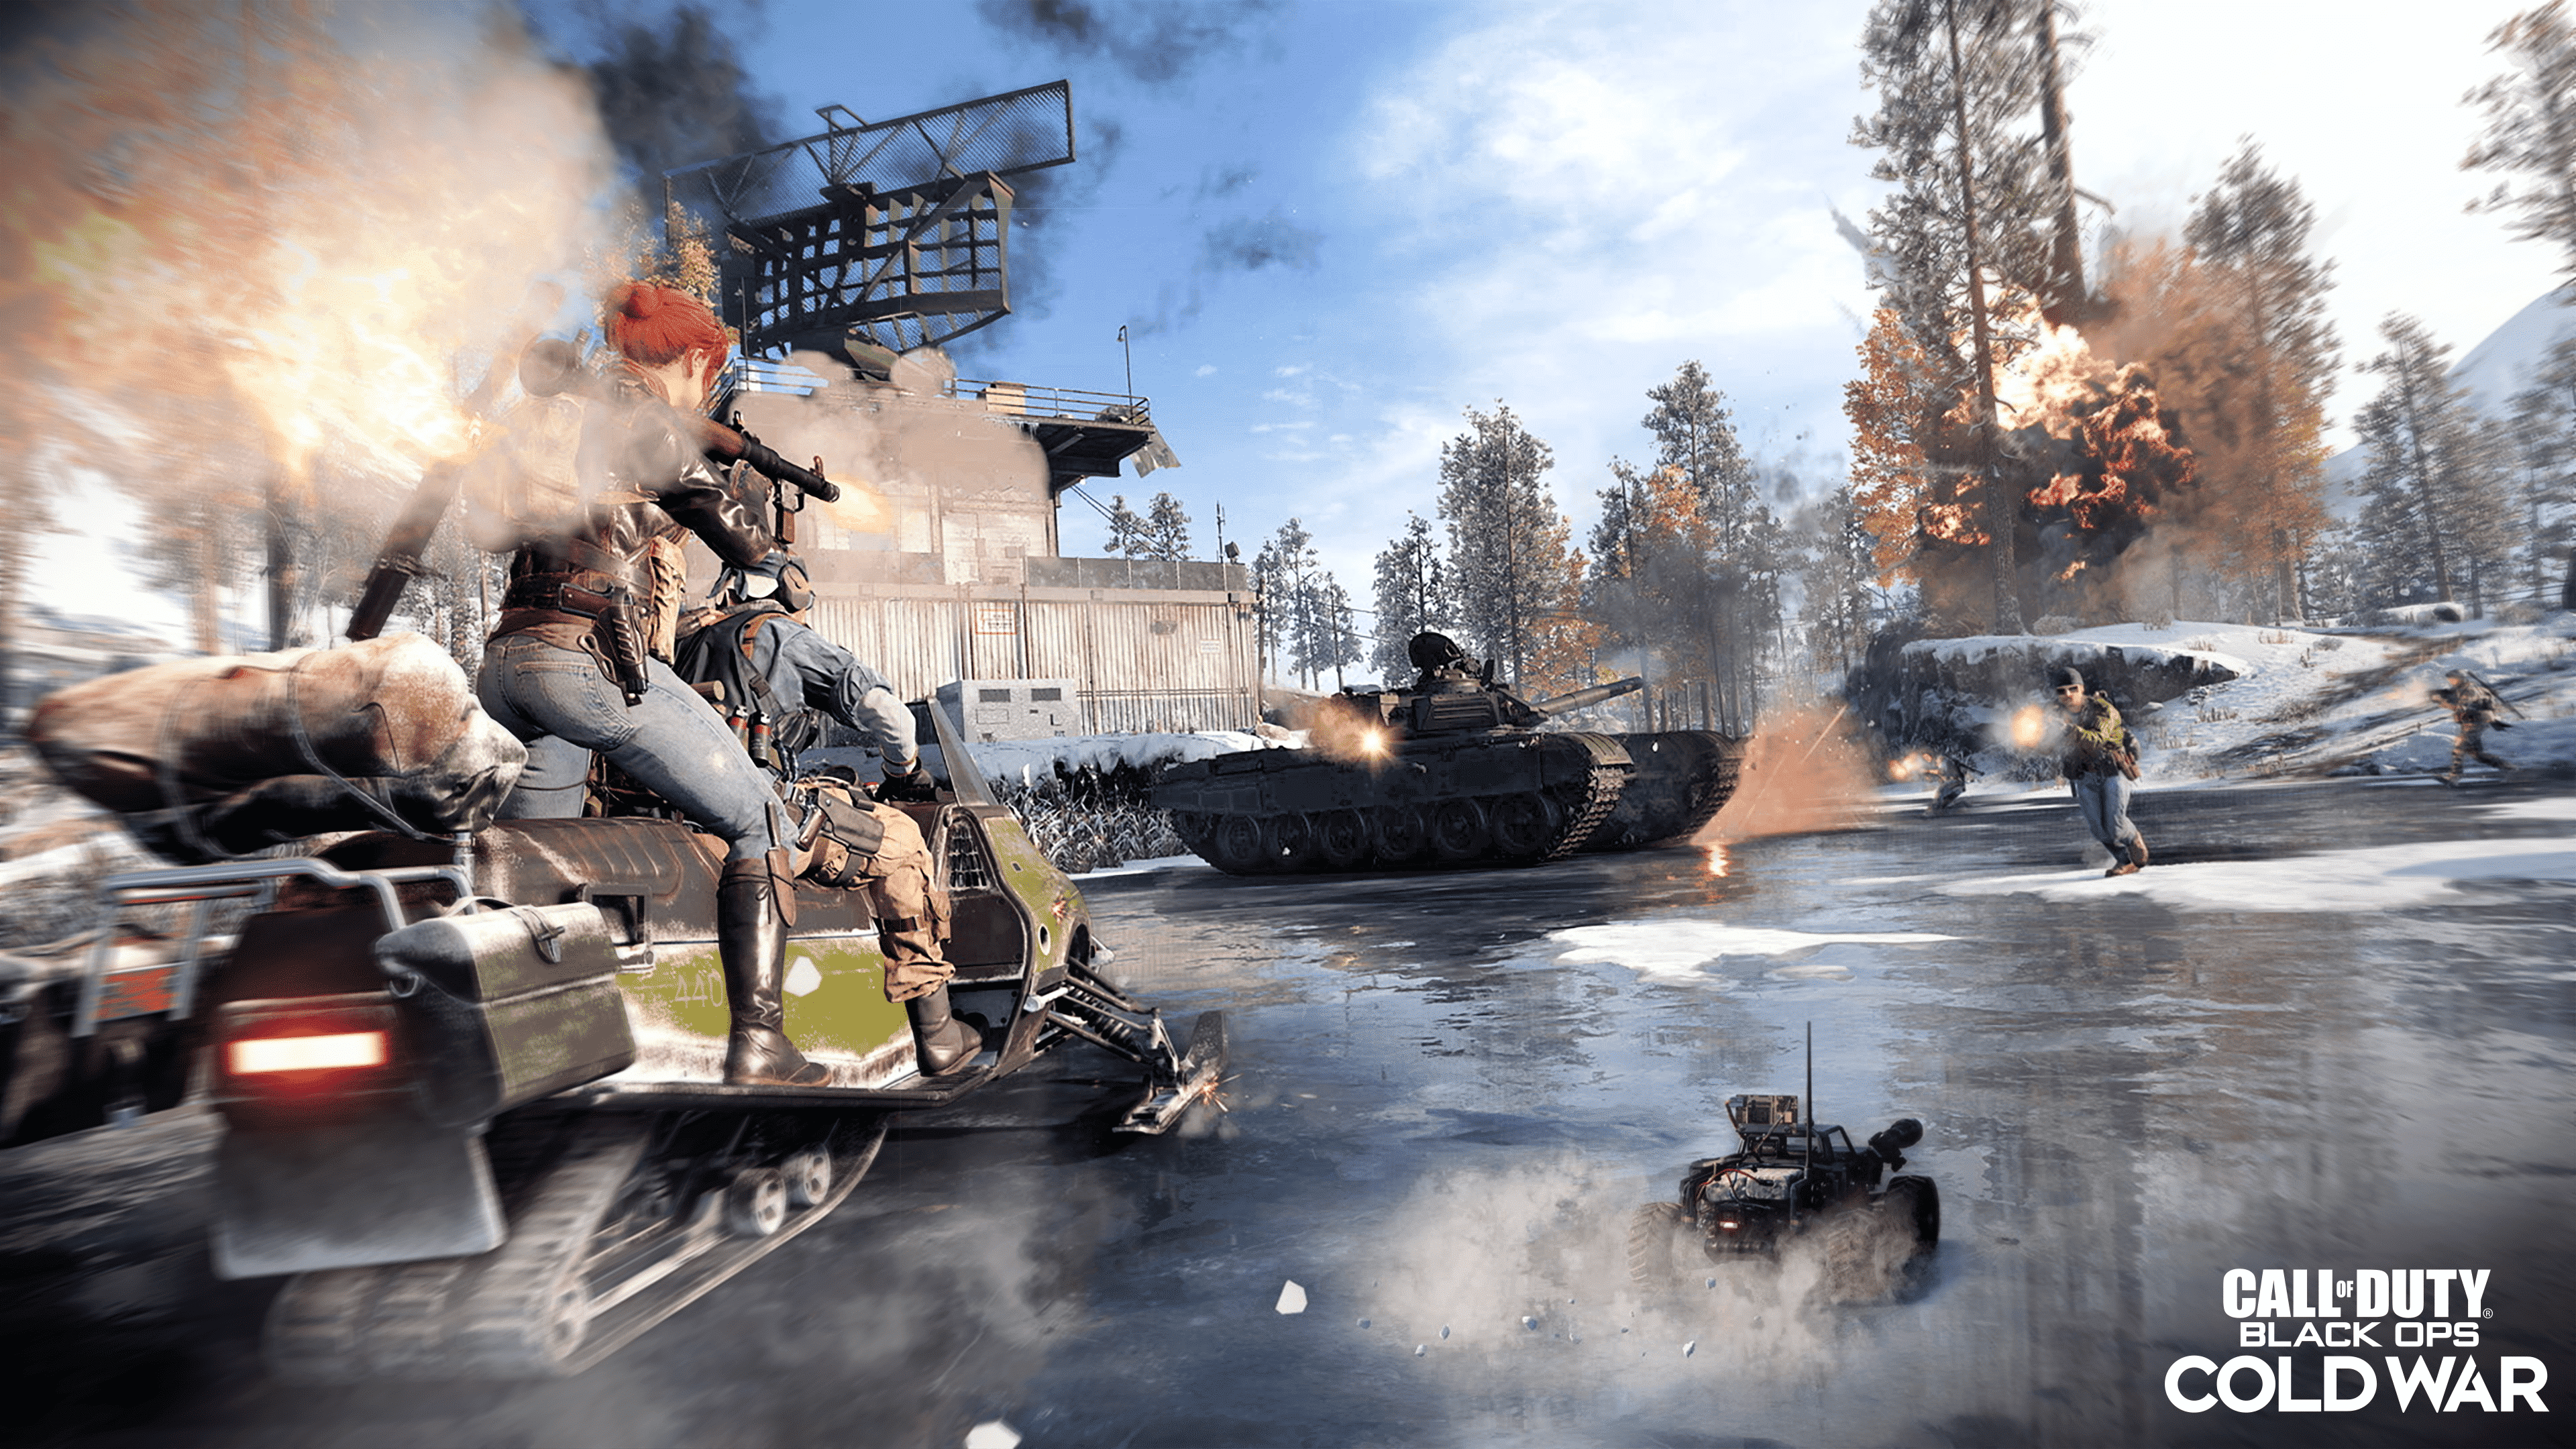 Snipers In Black Ops Cold War Alpha Intentionally Overpowered To Test Balance Charlie Intel